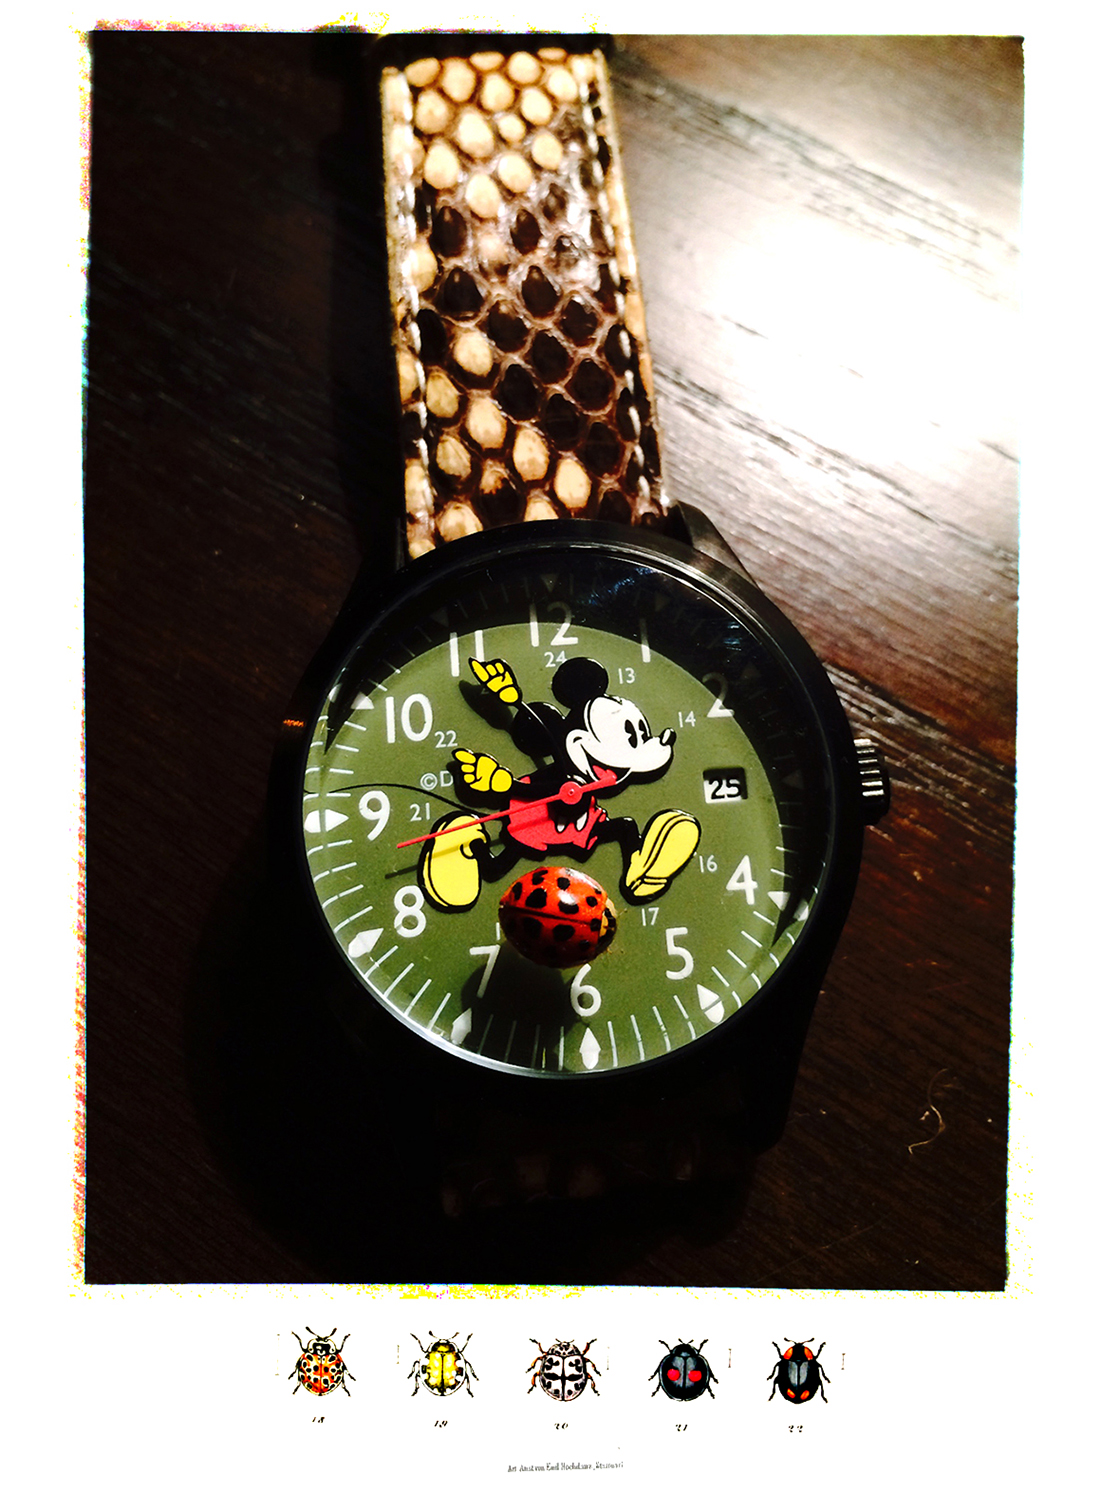 lady bug on mickey watch